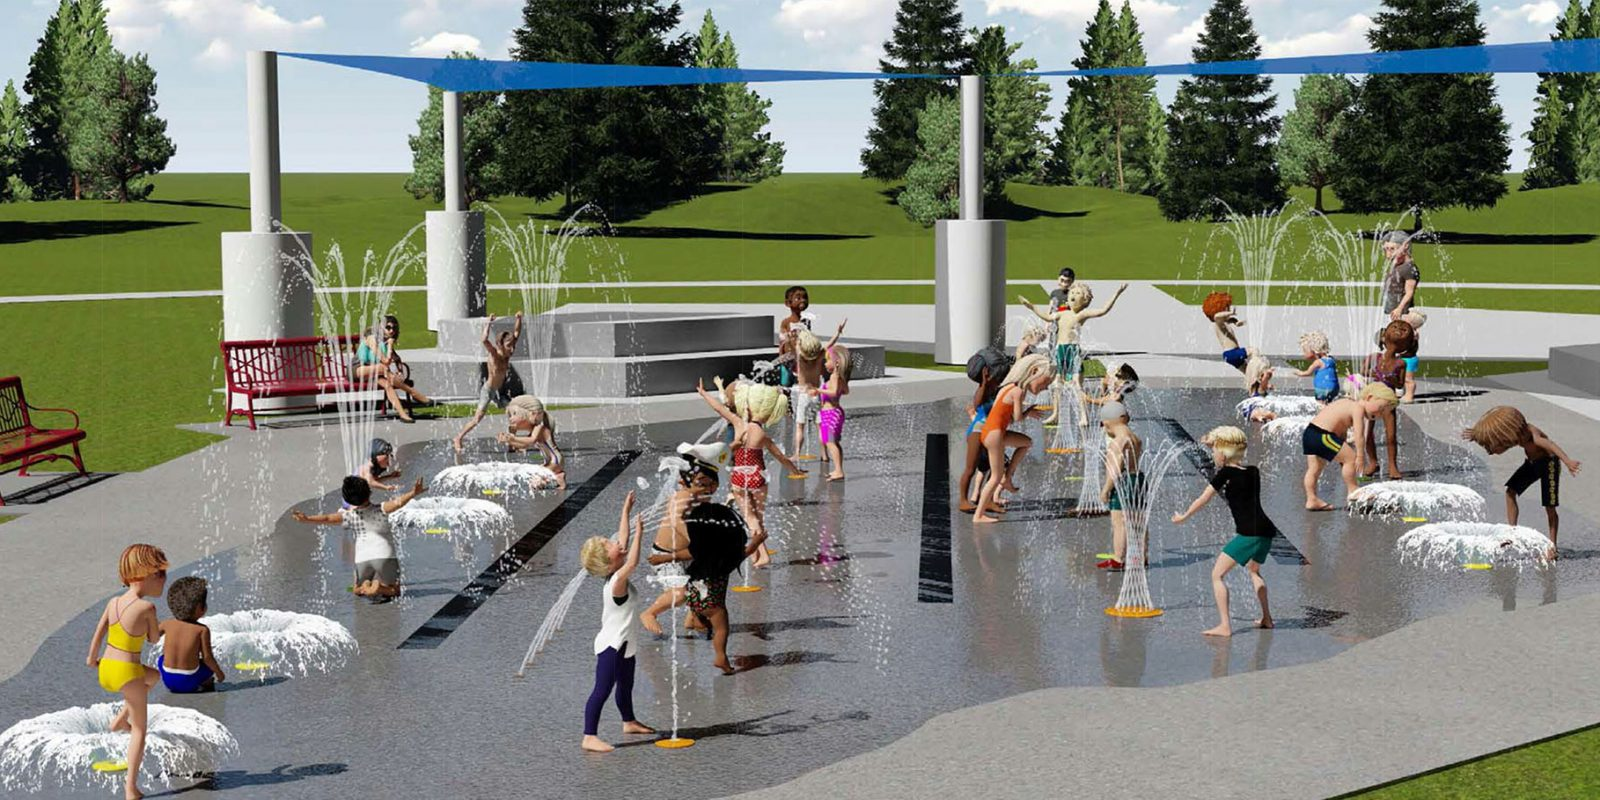 Splashpad Project